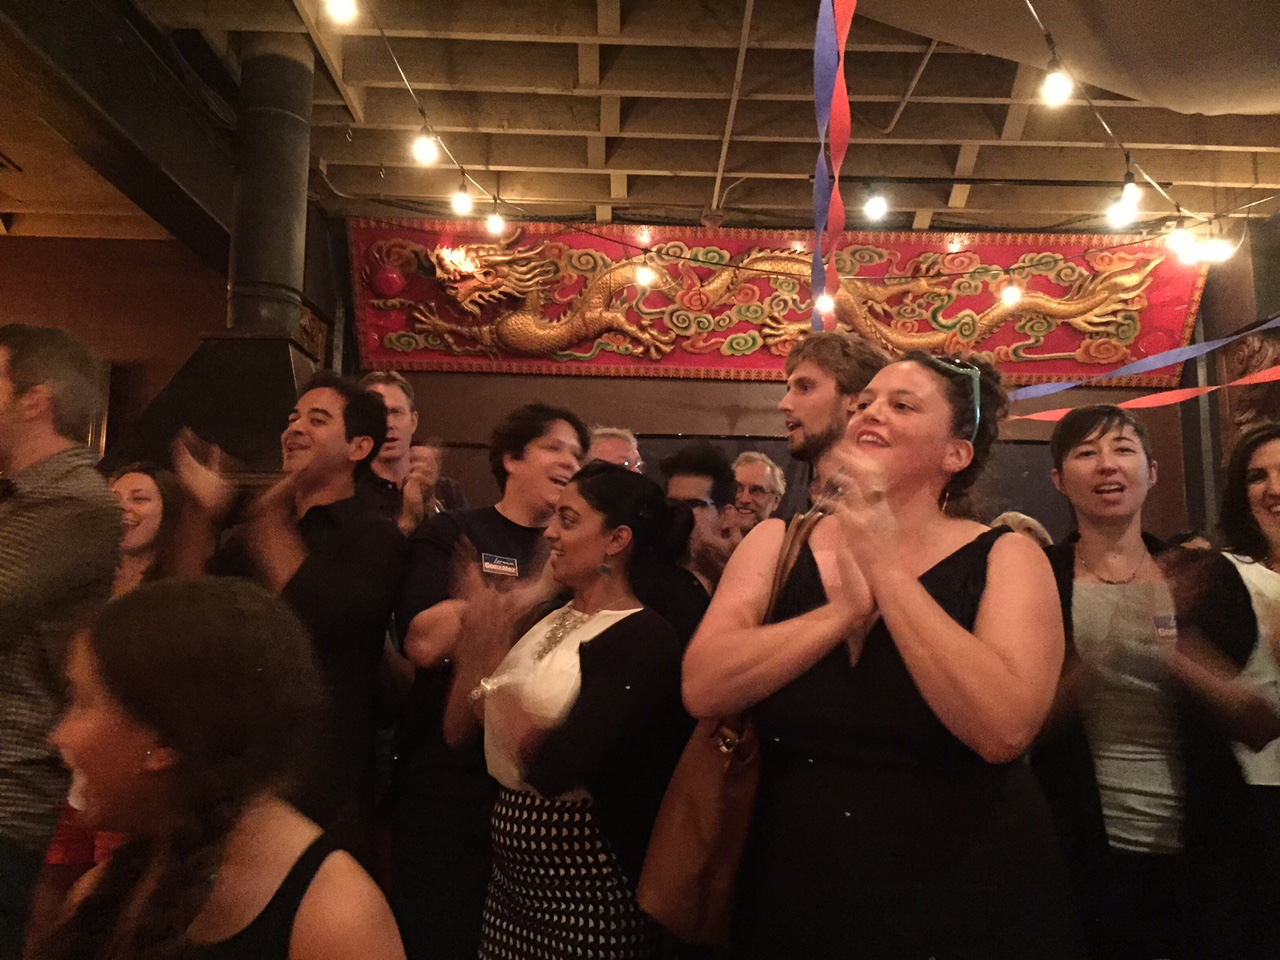 Supporters of Lorena González cheer her victory in citywide Position 9.